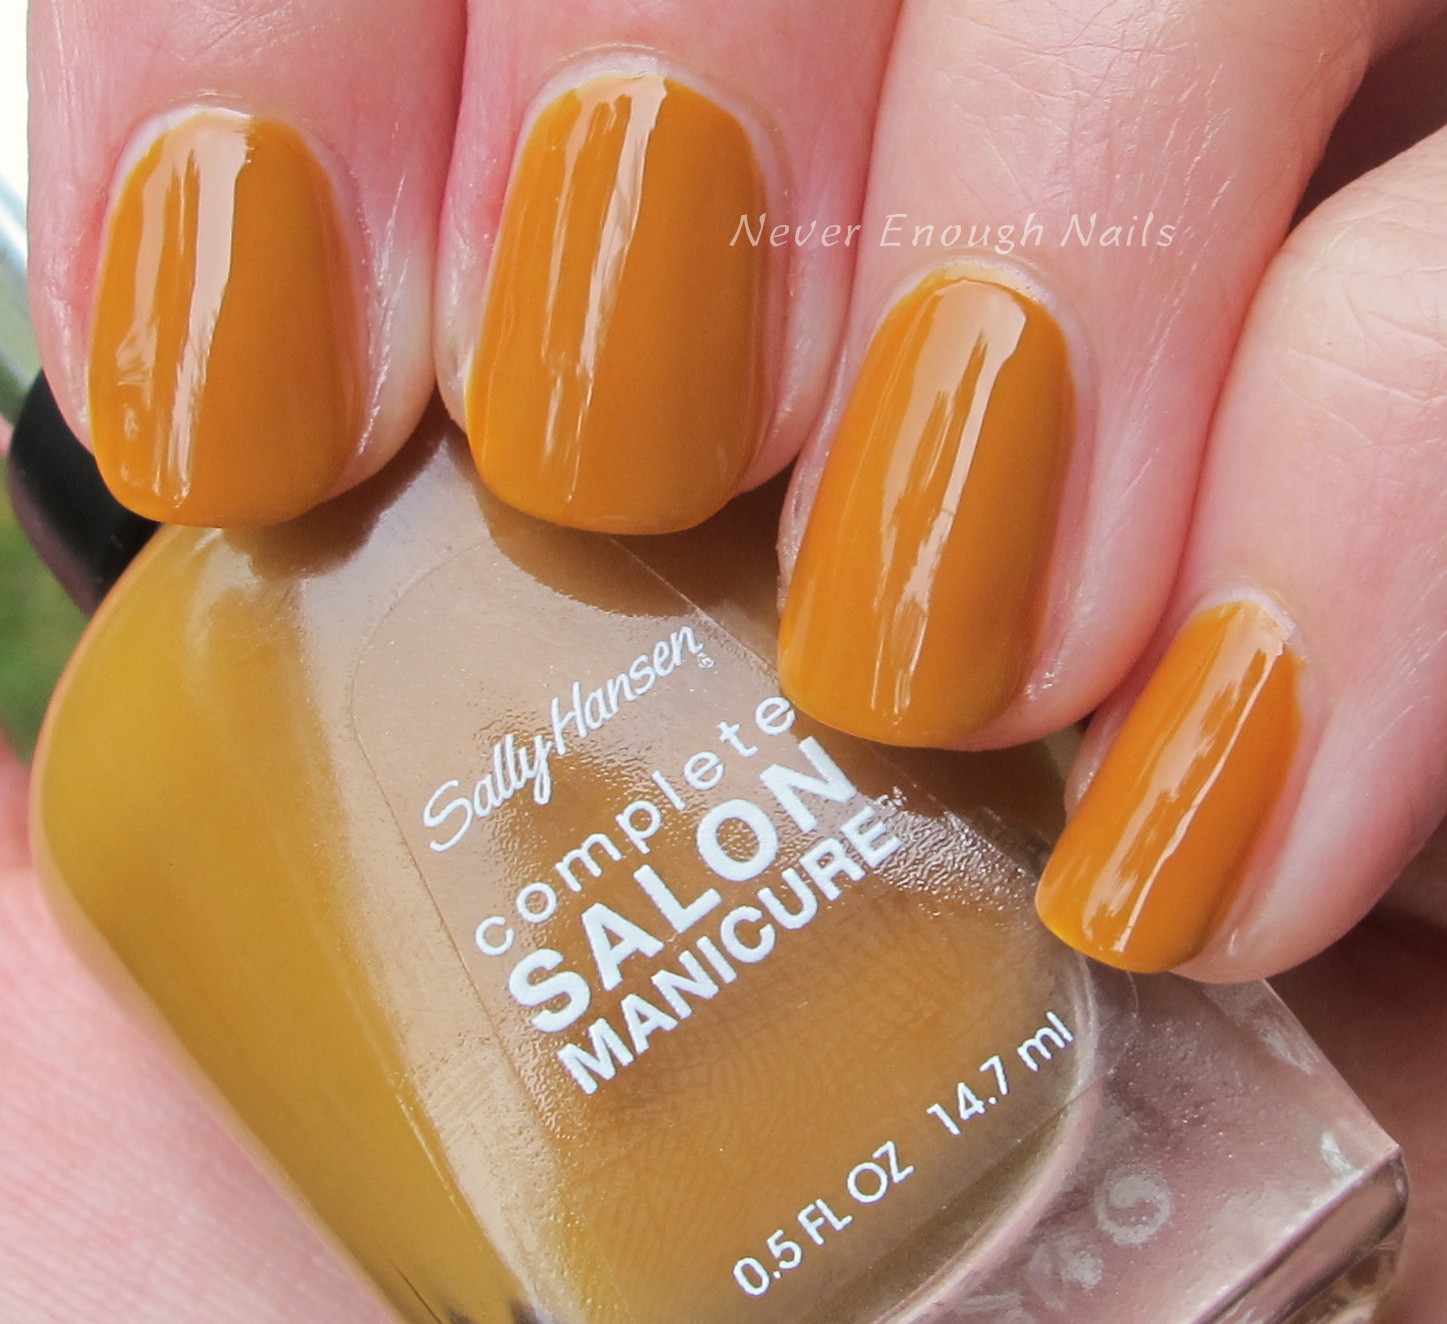 Never Enough Nails: Two More Sally Hansen Designer Shades for Fall 2015!